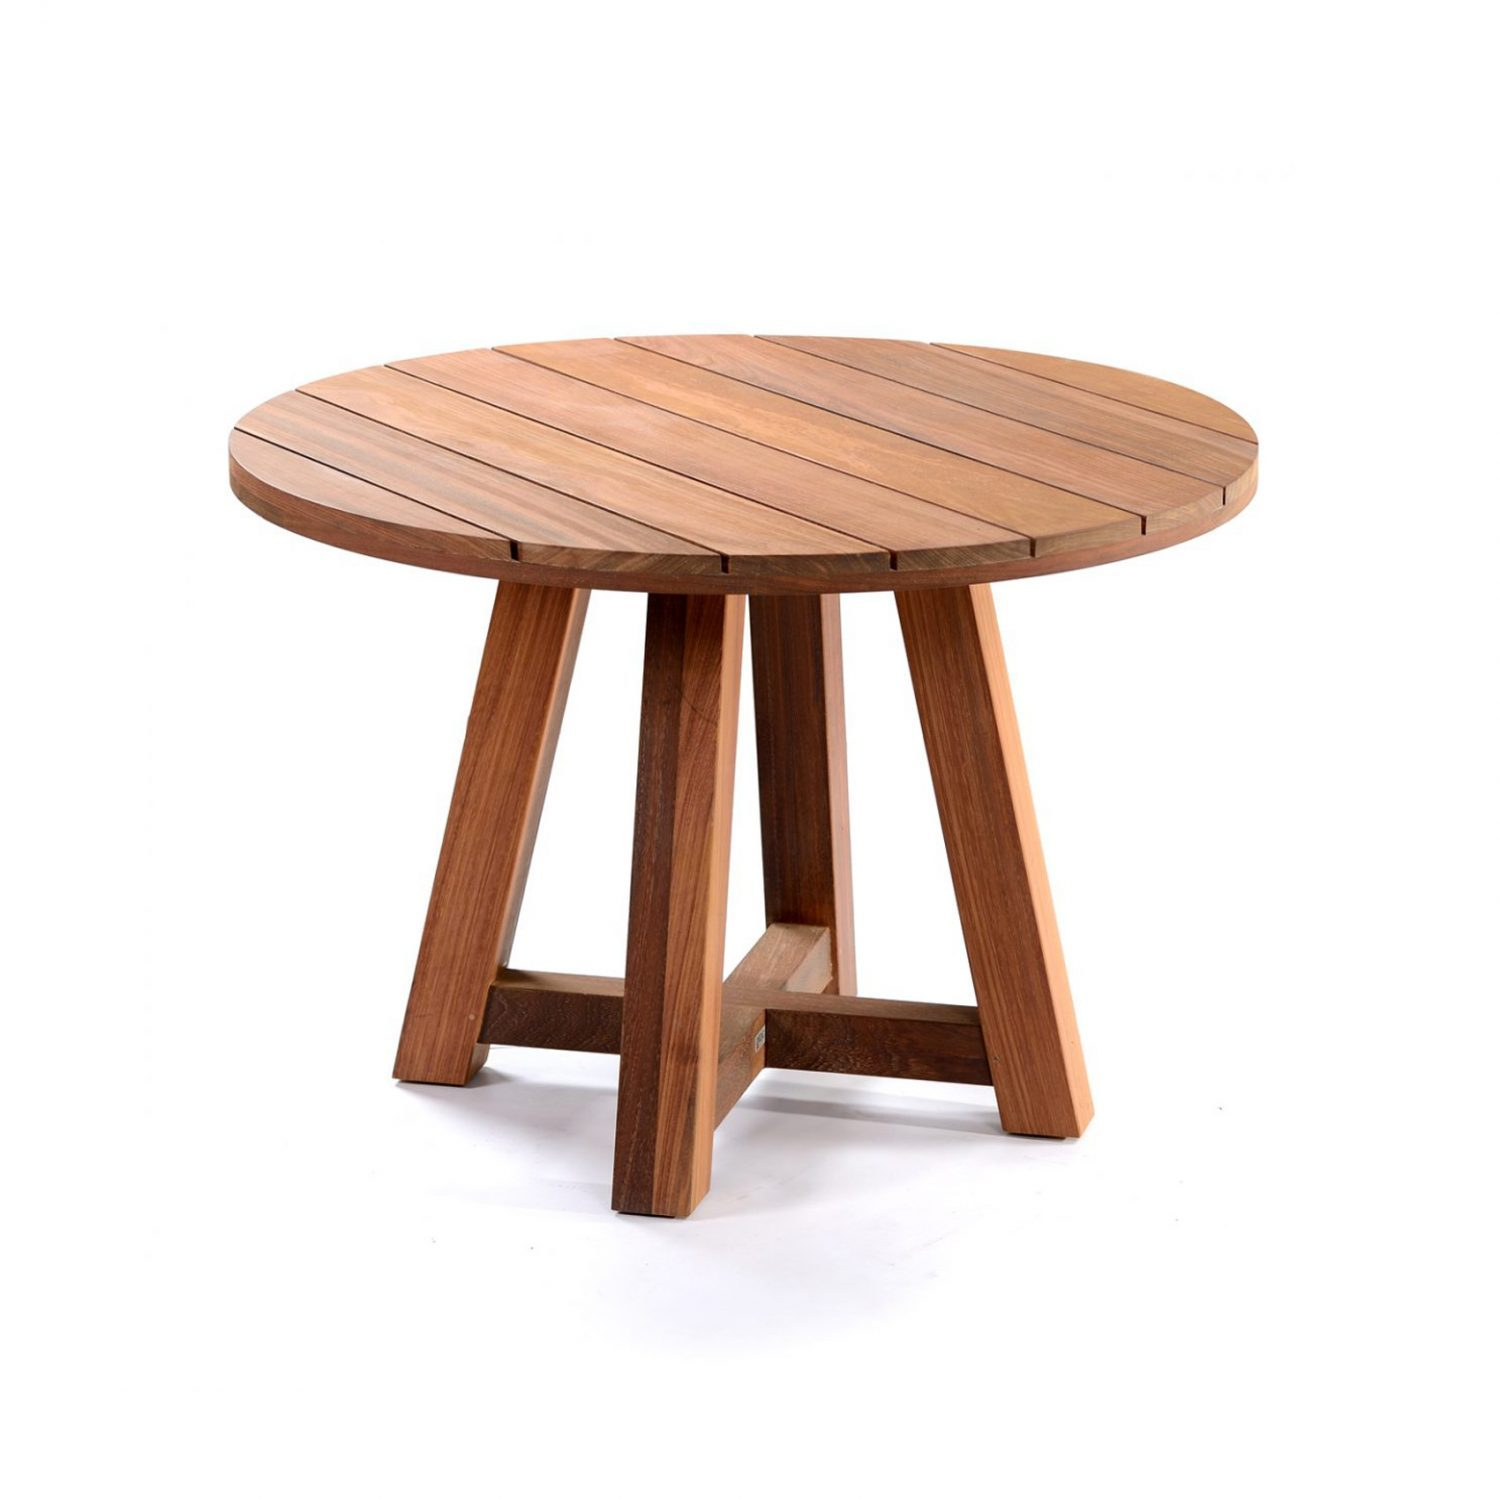 Mallorca Round Table - Timber Top